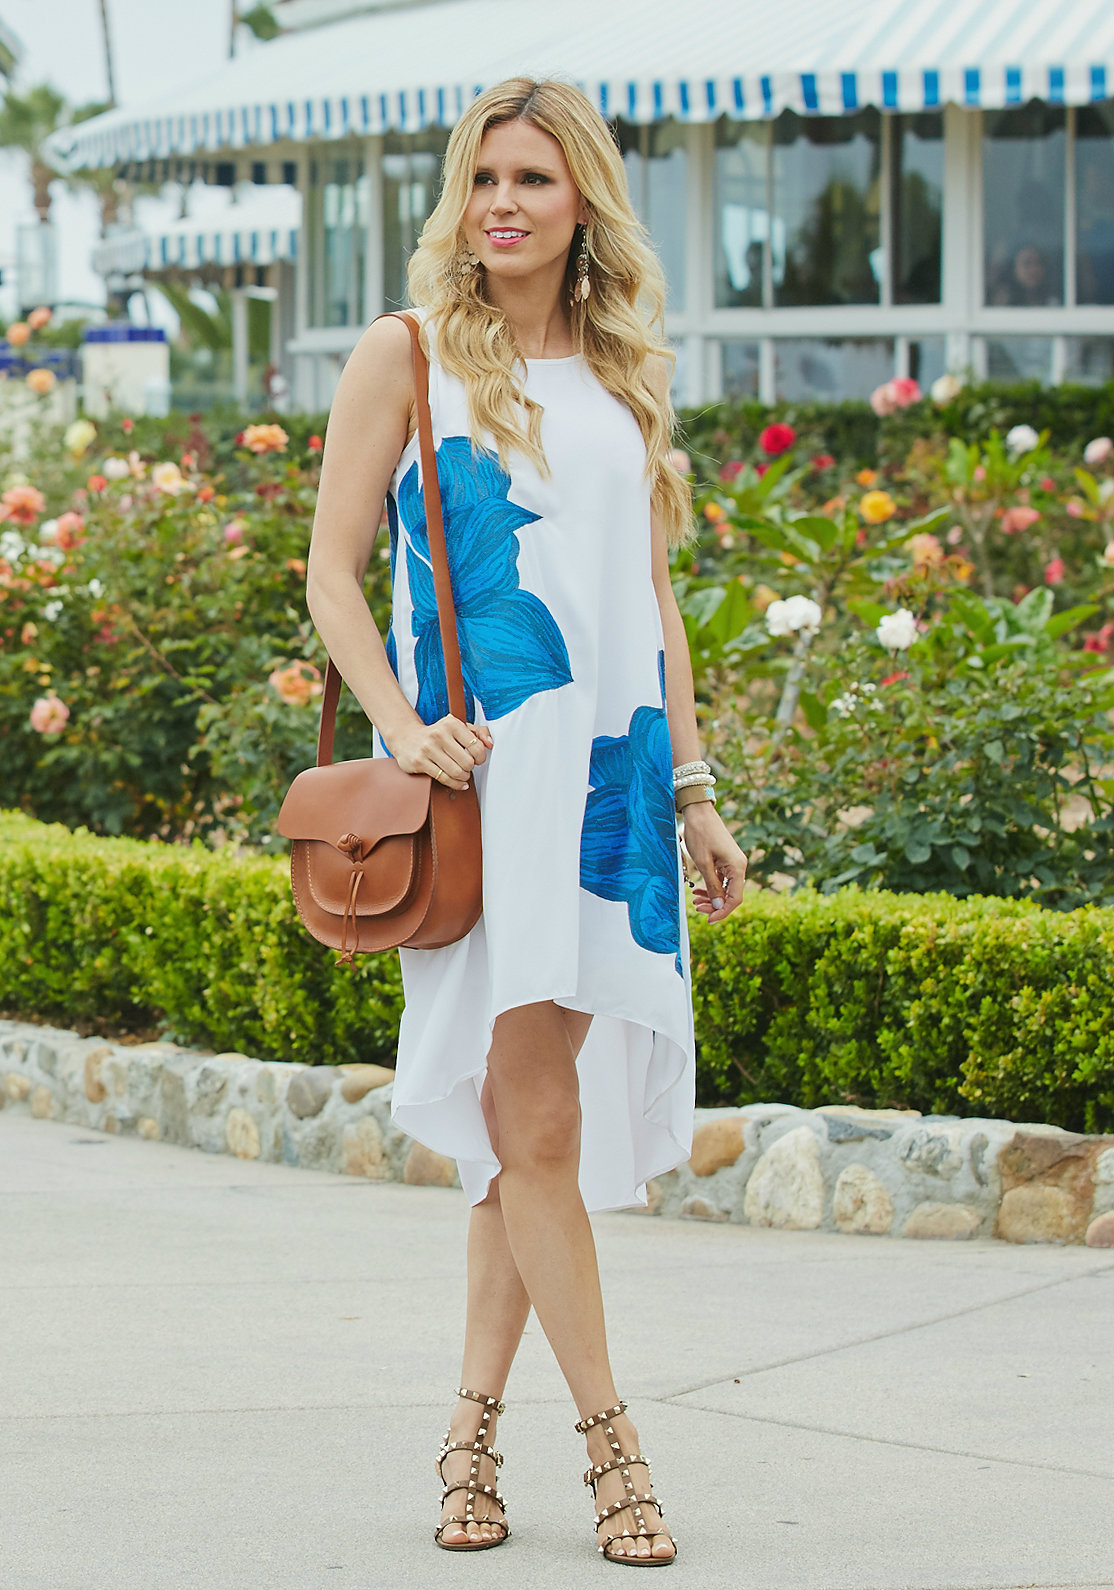 Blue and White Floral Dress - Sapphire Diaries